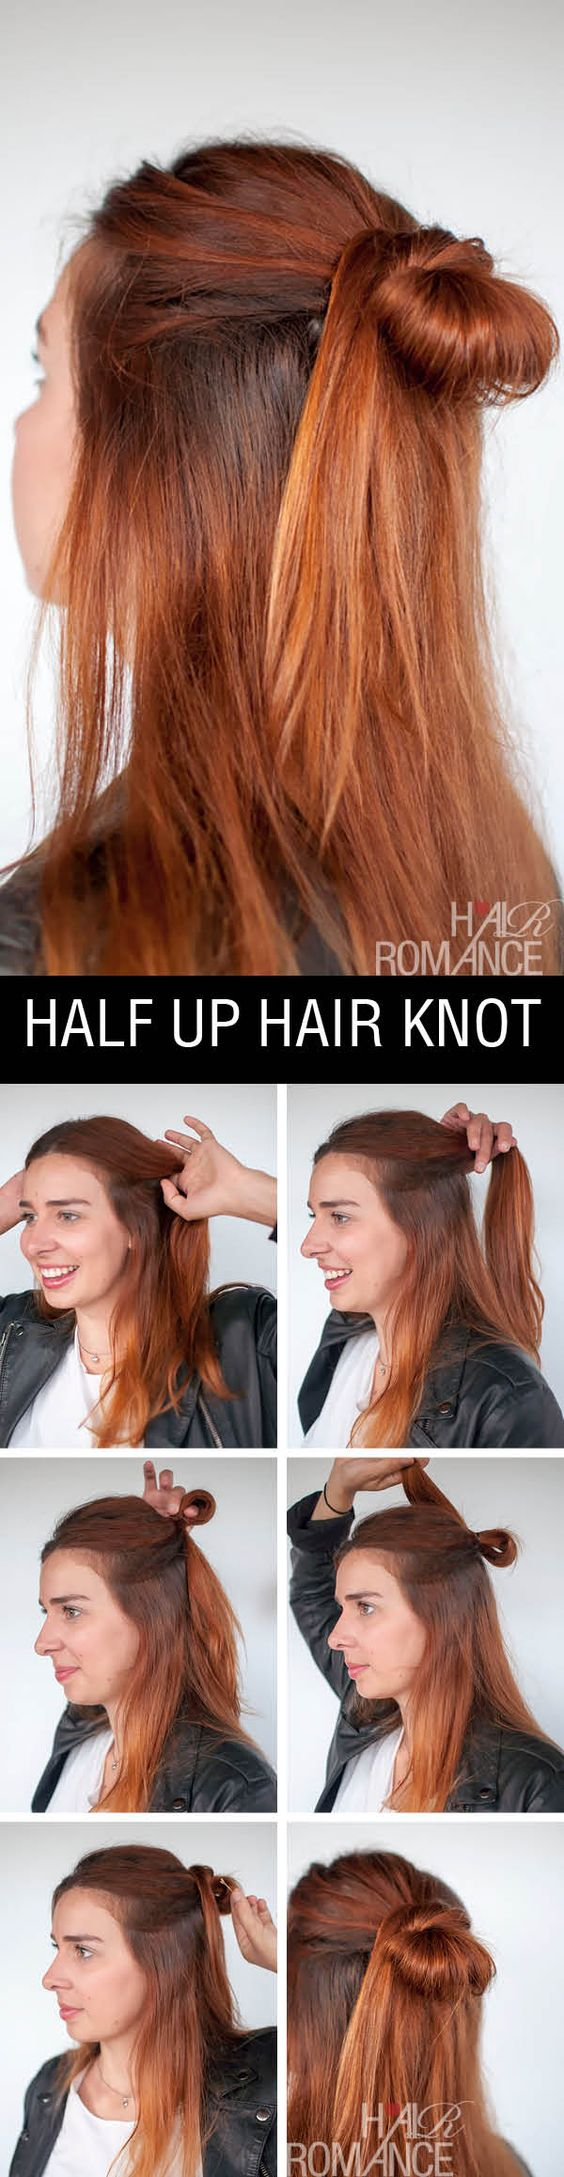 Half up Hair Knot for Bright Hair via